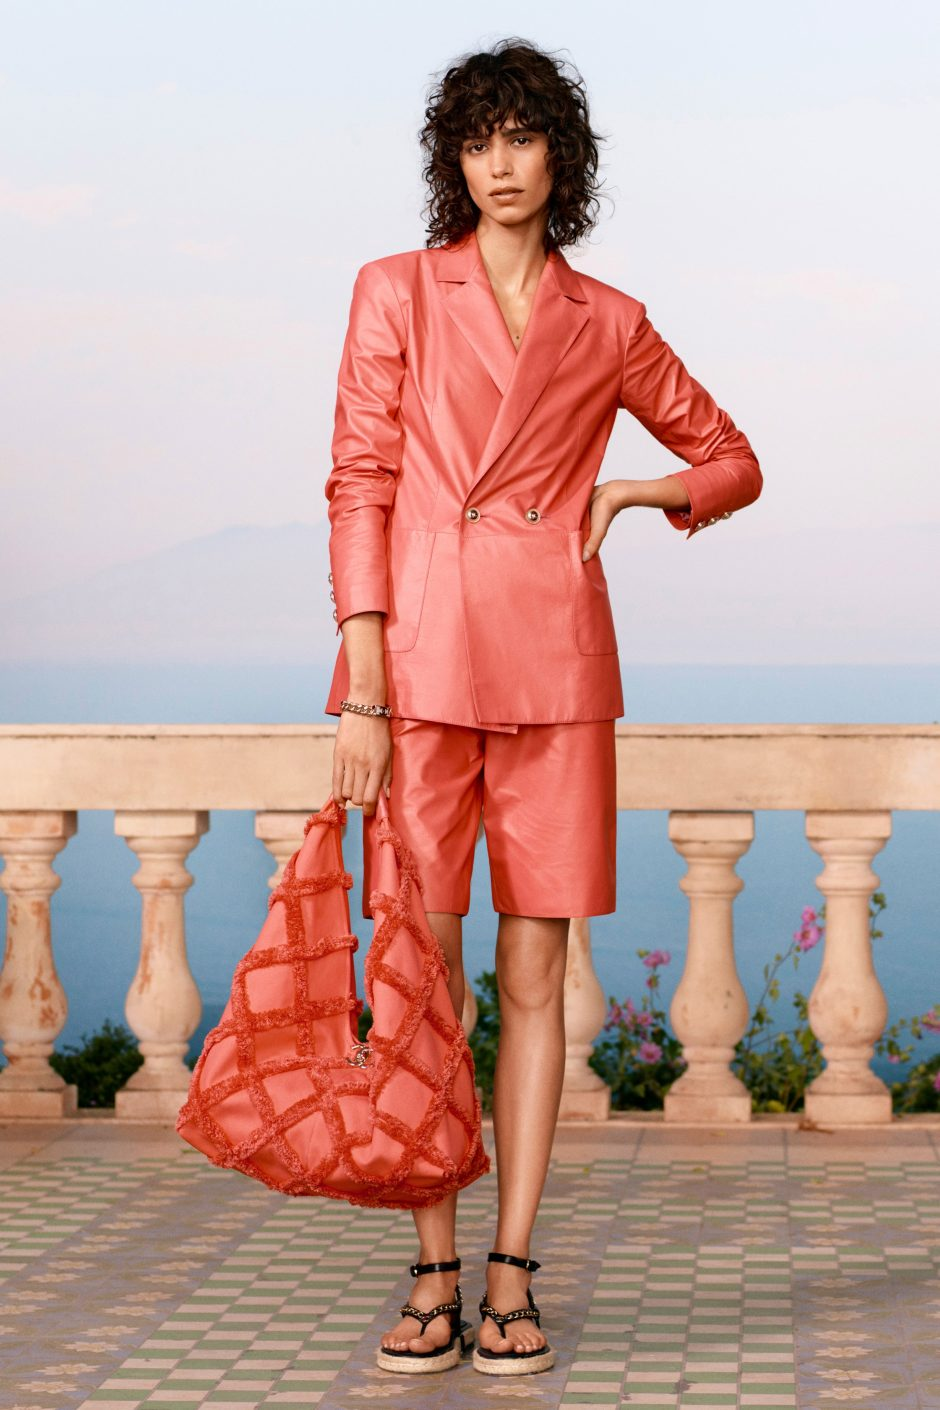 00010-Chanel-Resort-2021